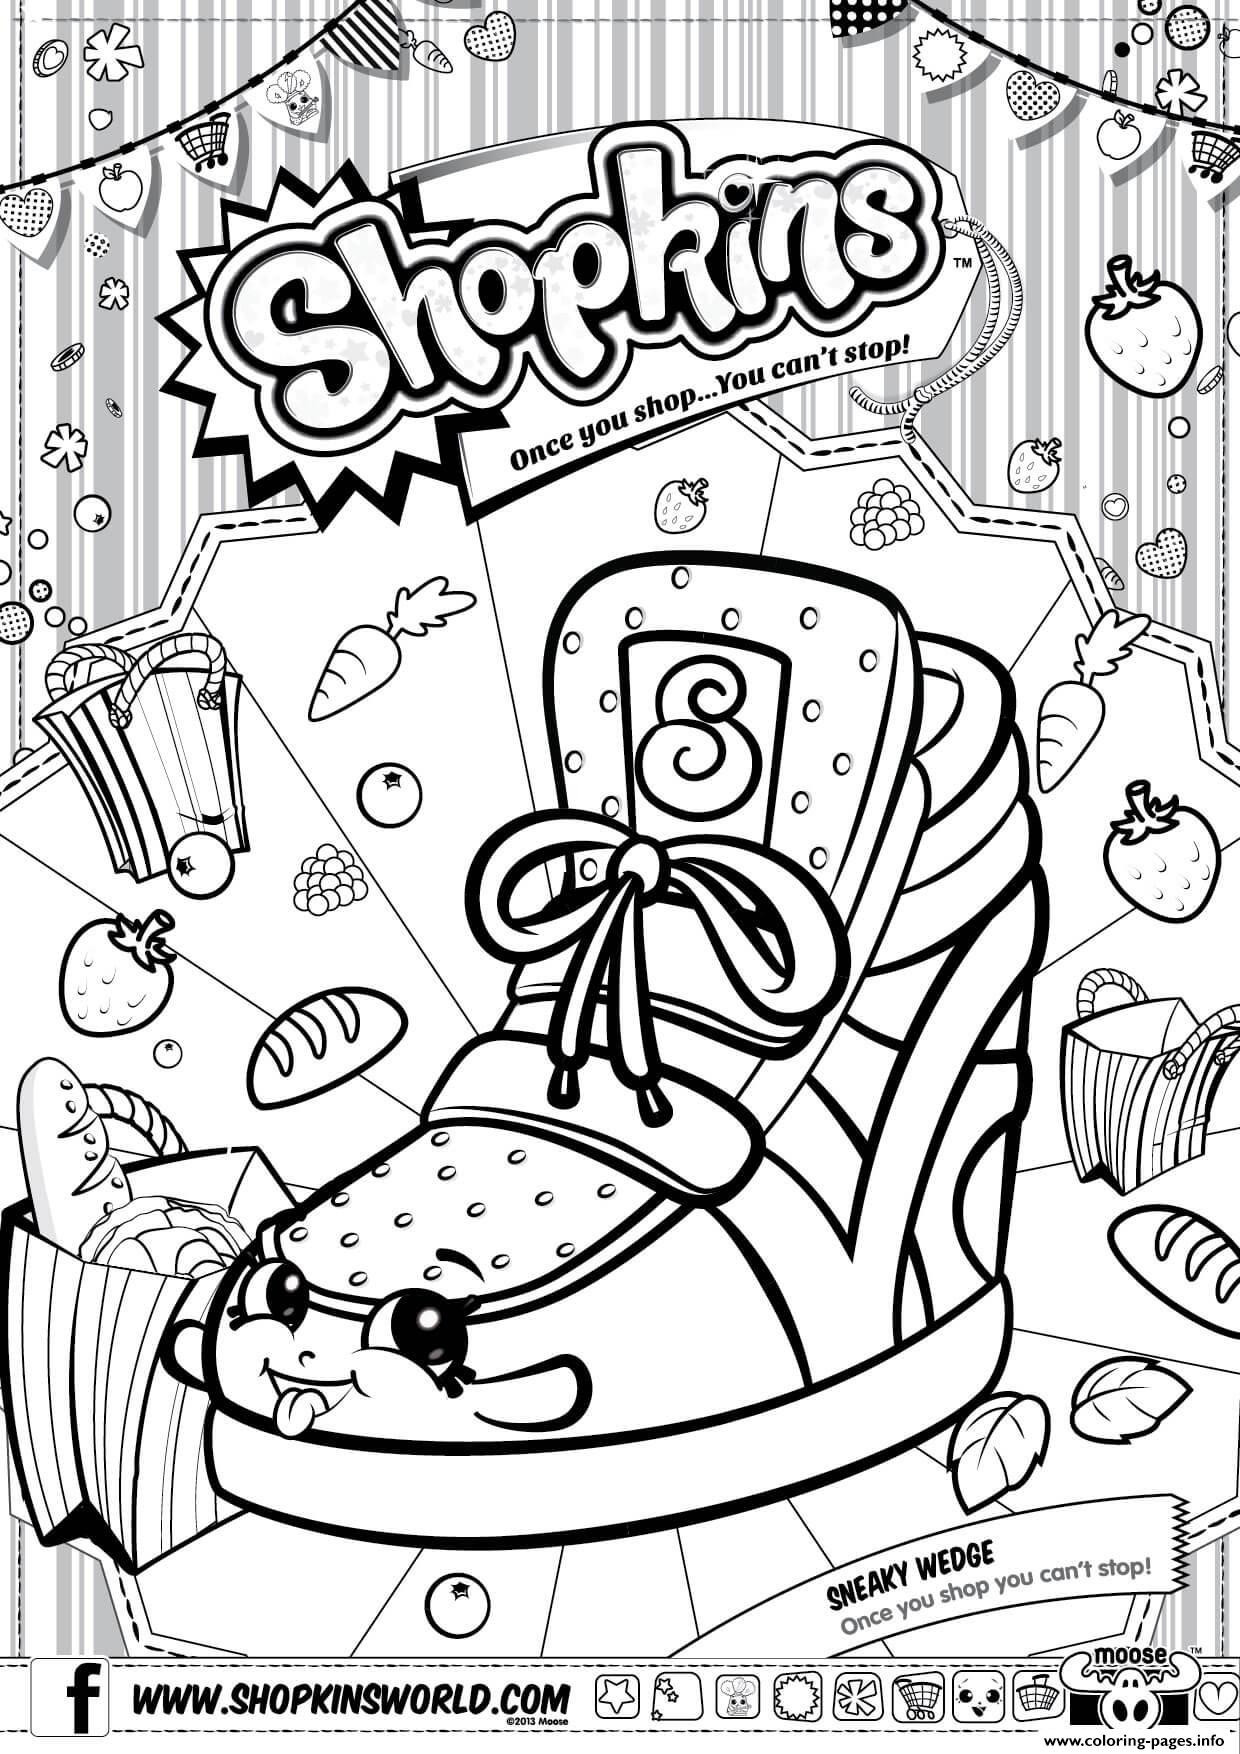 1240x1754 Shopkins Coloring Pages Donut Shopkins Coloring Pages Free